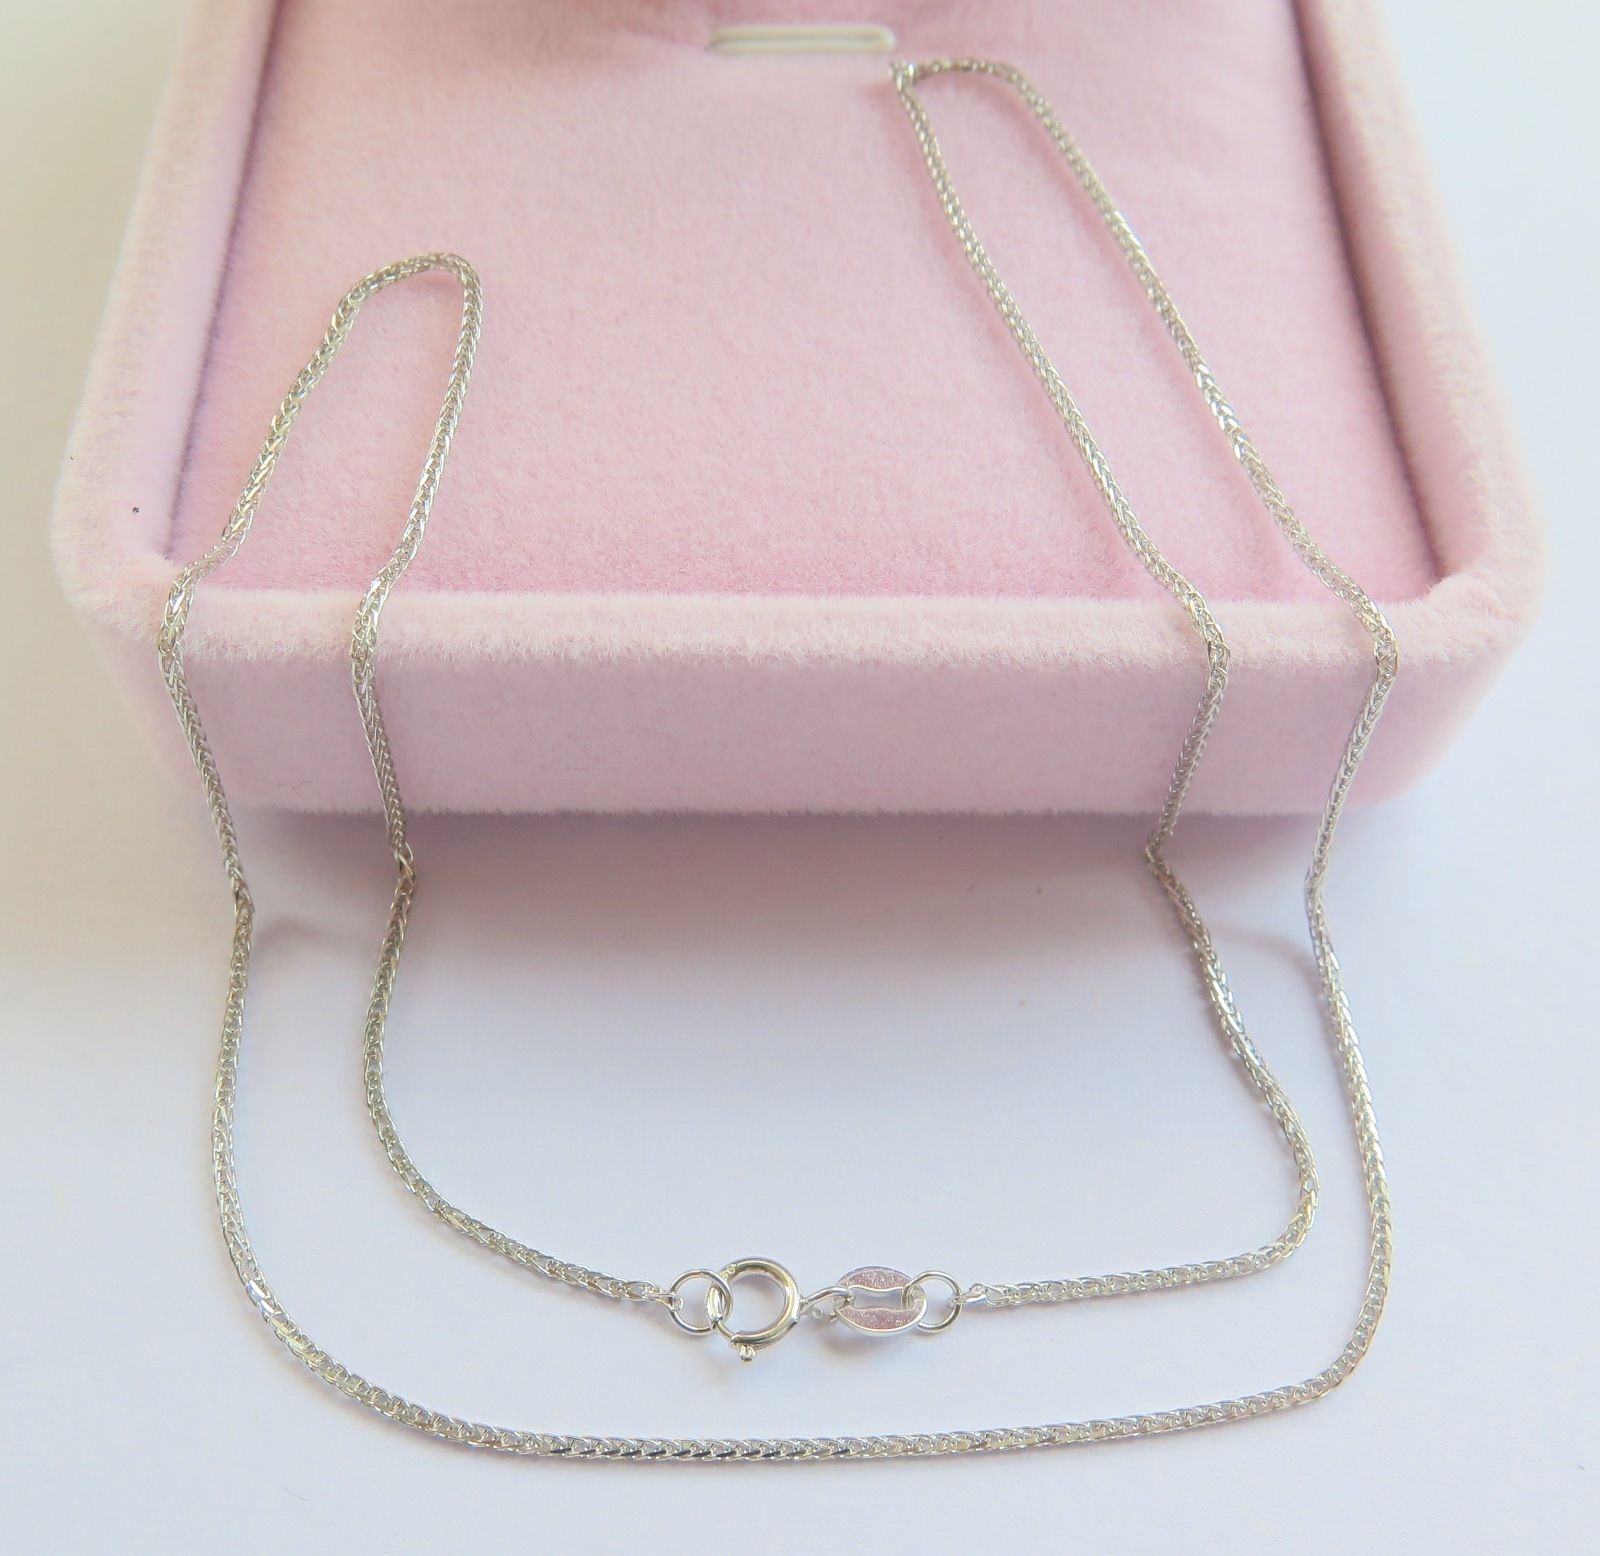 Authentic 18K White Gold Necklace Classic Wheat Link Chain Necklace 40cm LengthAuthentic 18K White Gold Necklace Classic Wheat Link Chain Necklace 40cm Length